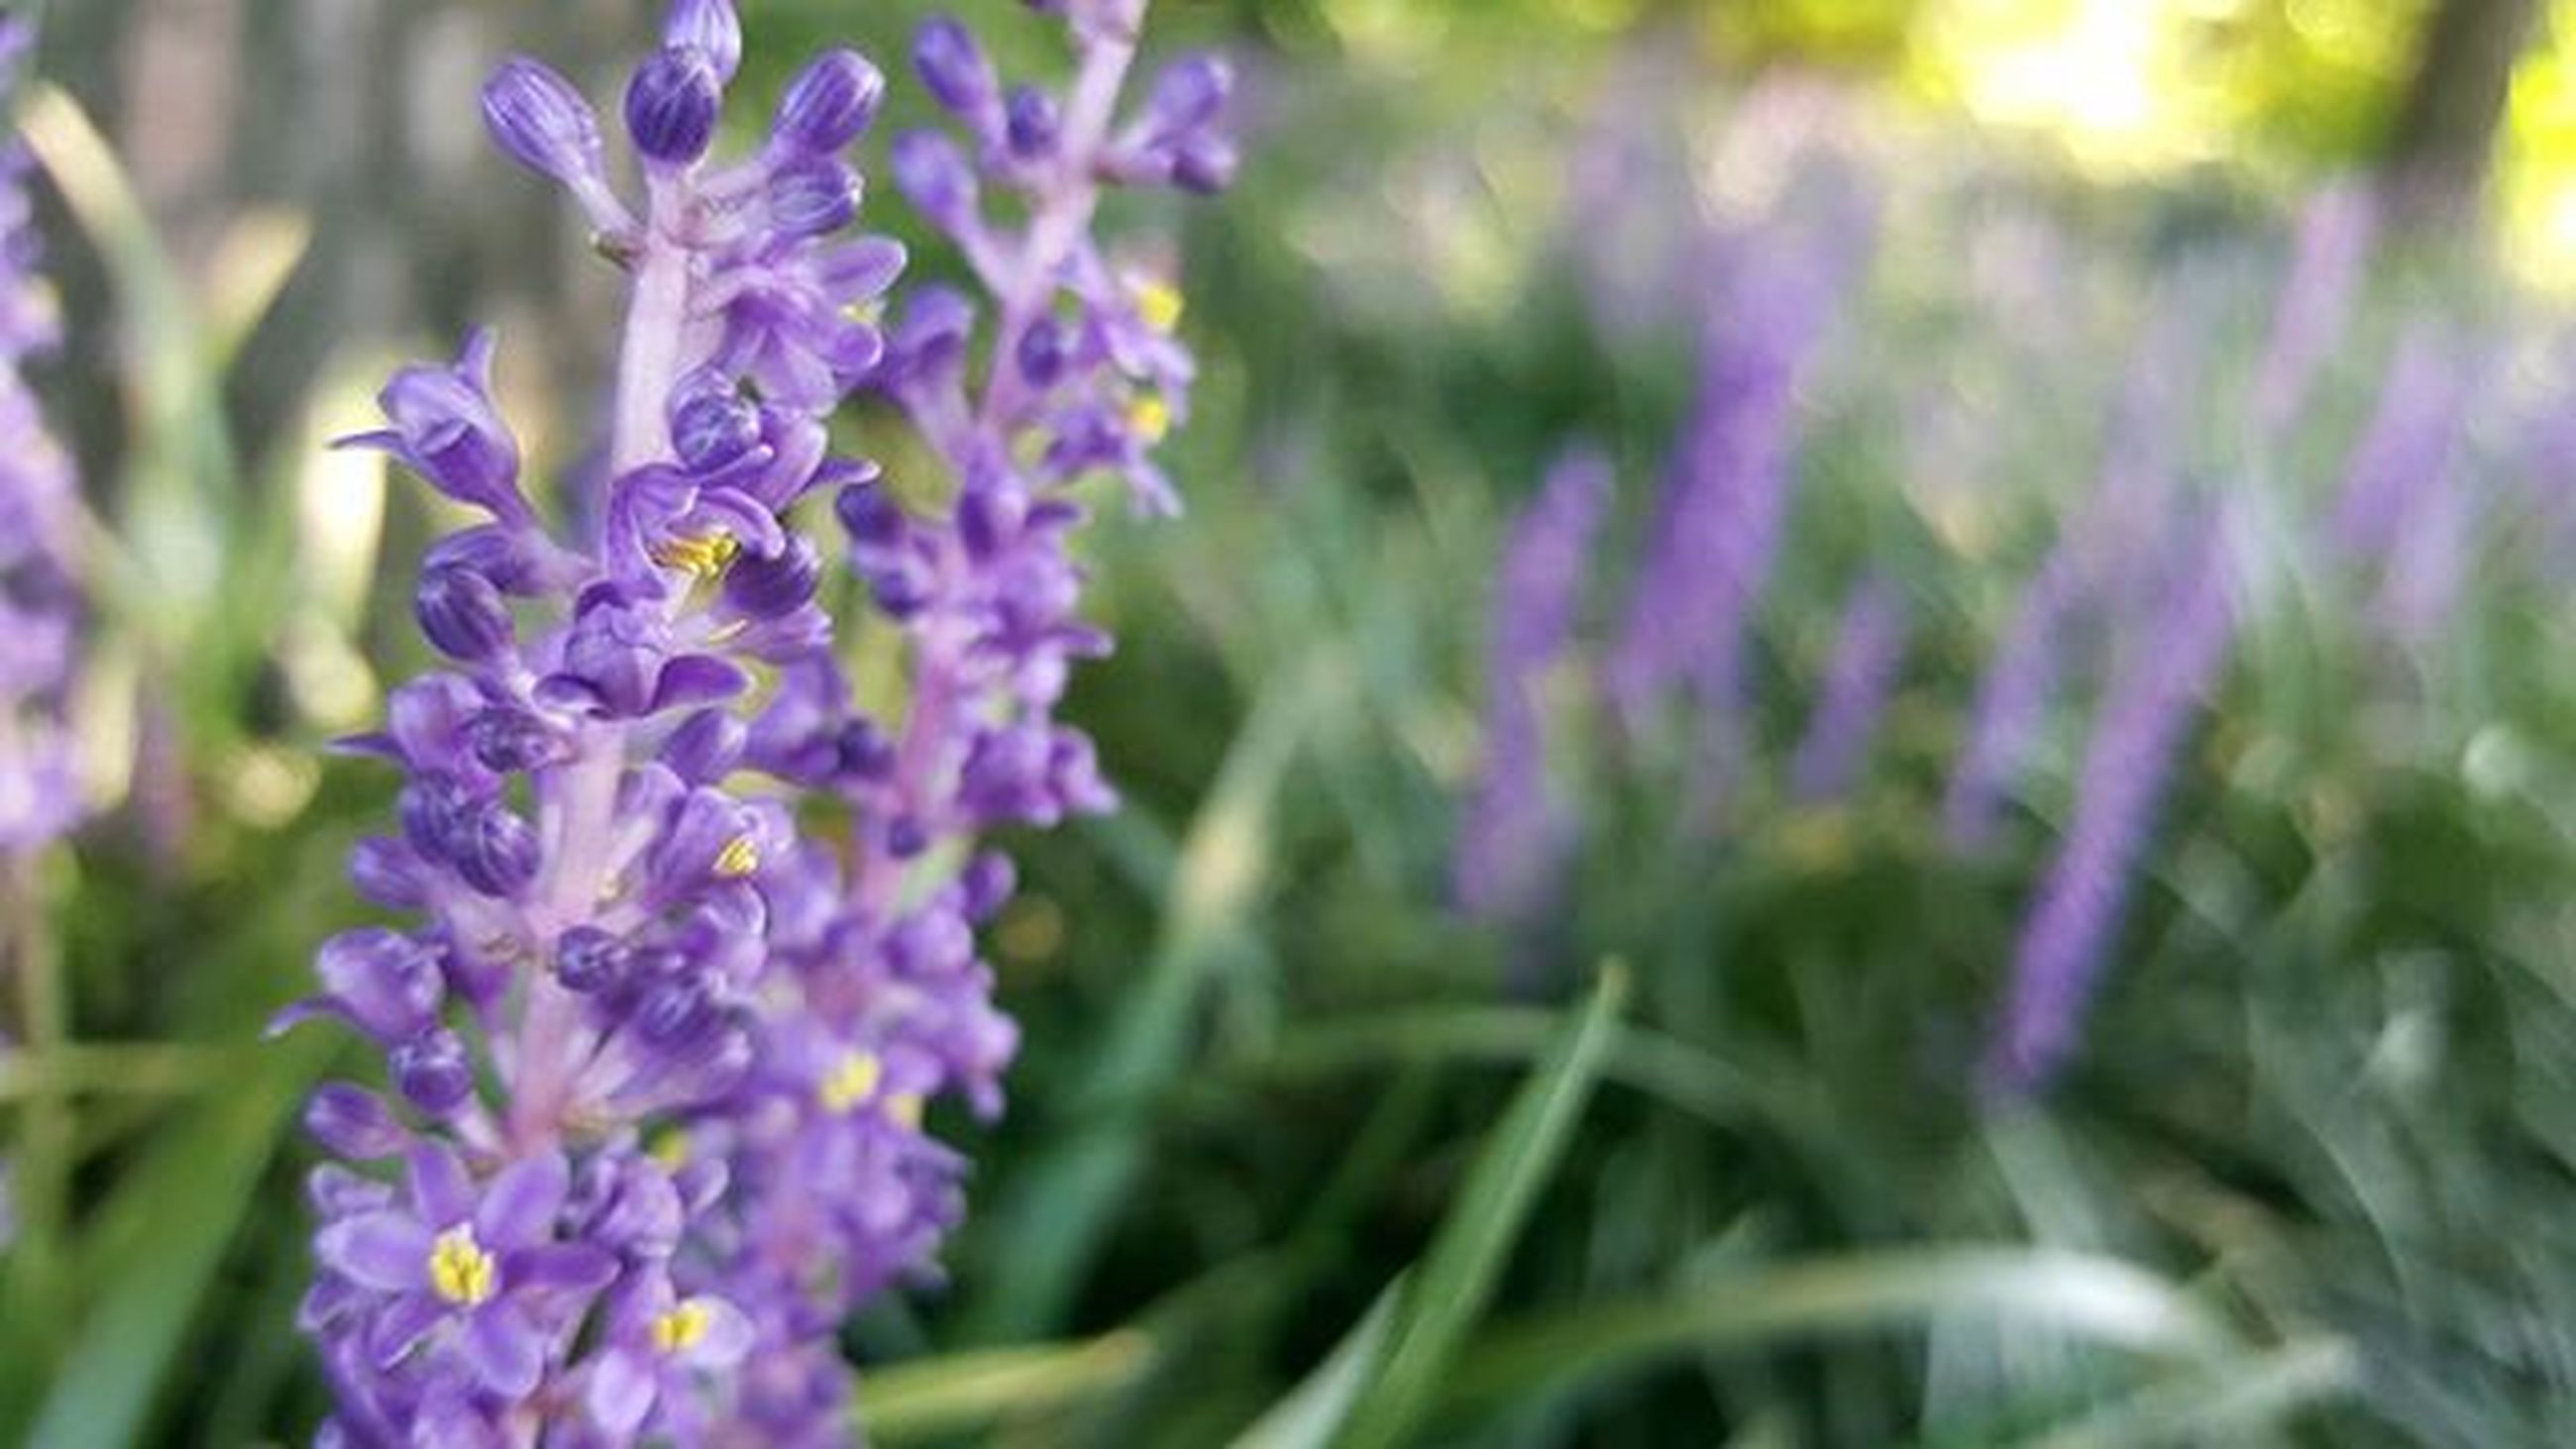 flower, purple, freshness, growth, fragility, beauty in nature, plant, focus on foreground, blooming, petal, nature, close-up, stem, selective focus, flower head, in bloom, field, outdoors, park - man made space, day